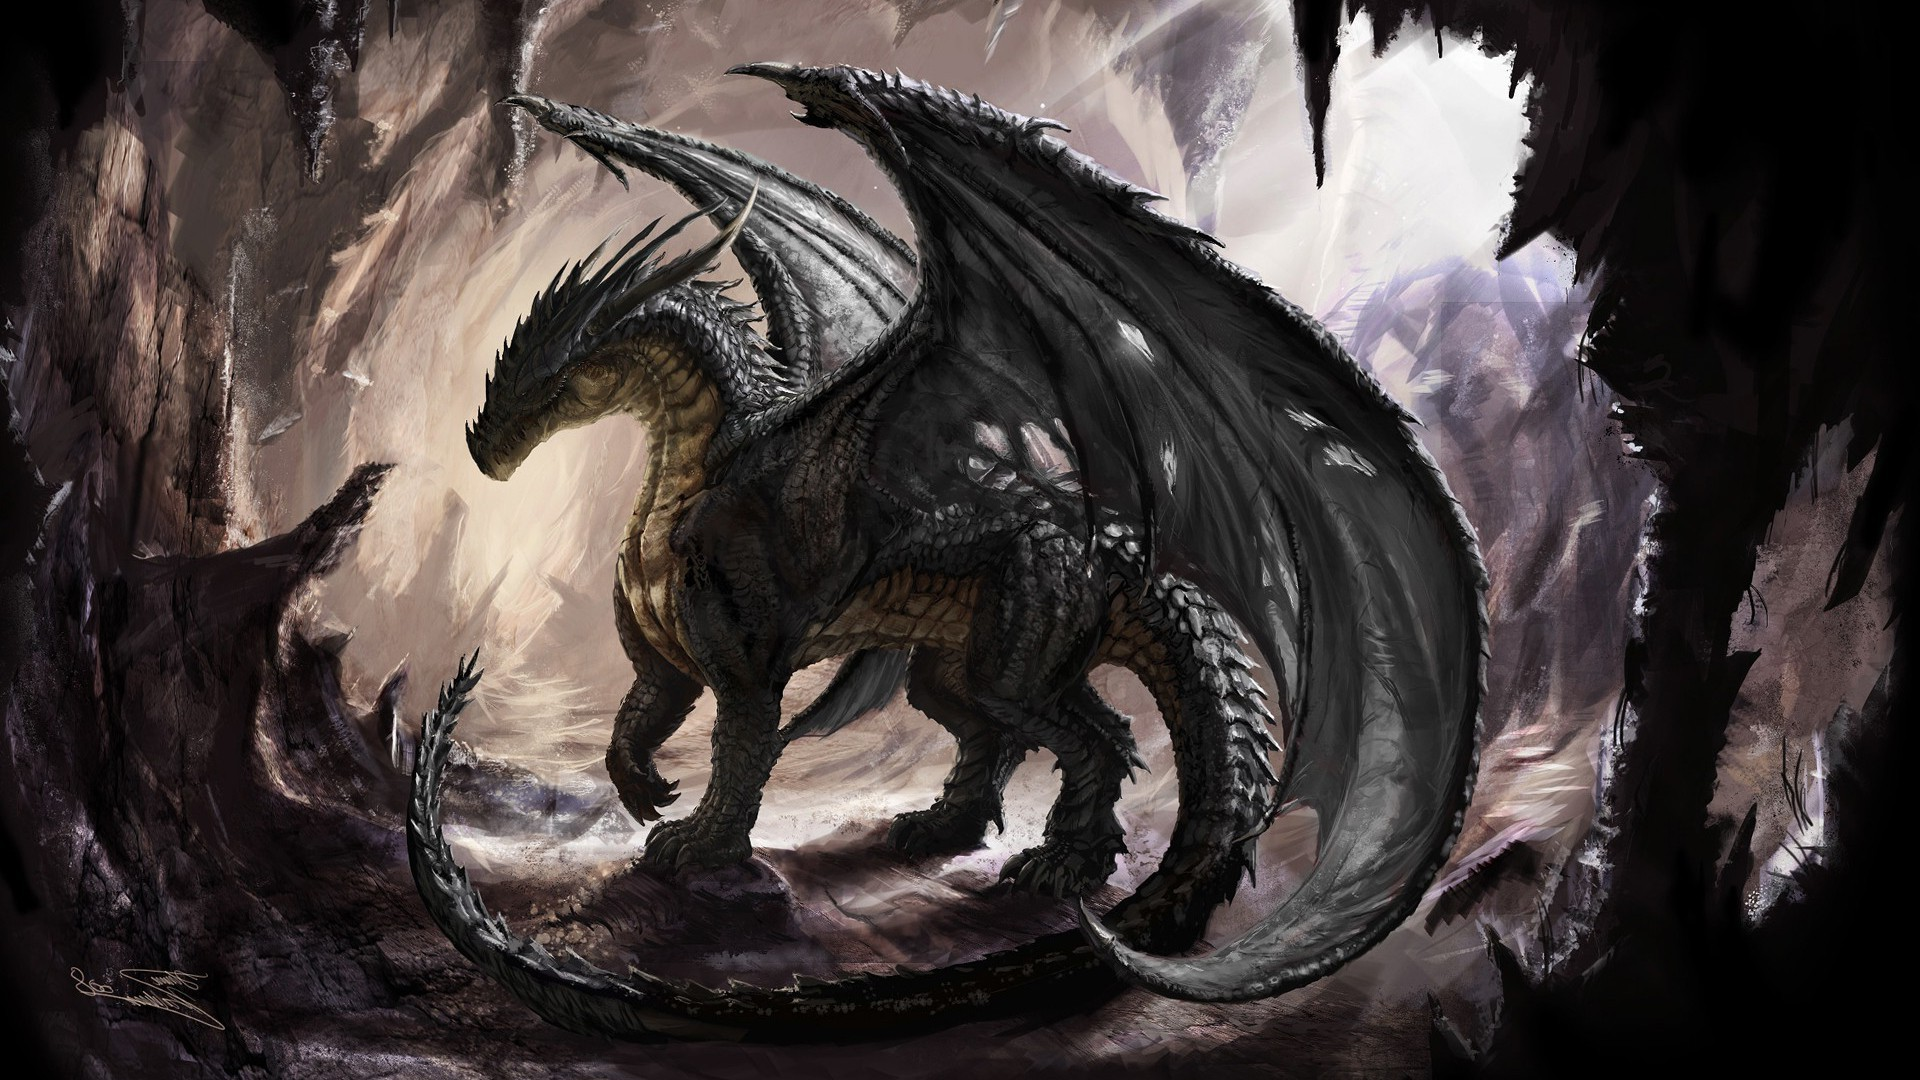 Shadow dragon wallpaper 60 images - Dragon wallpaper hd for pc ...